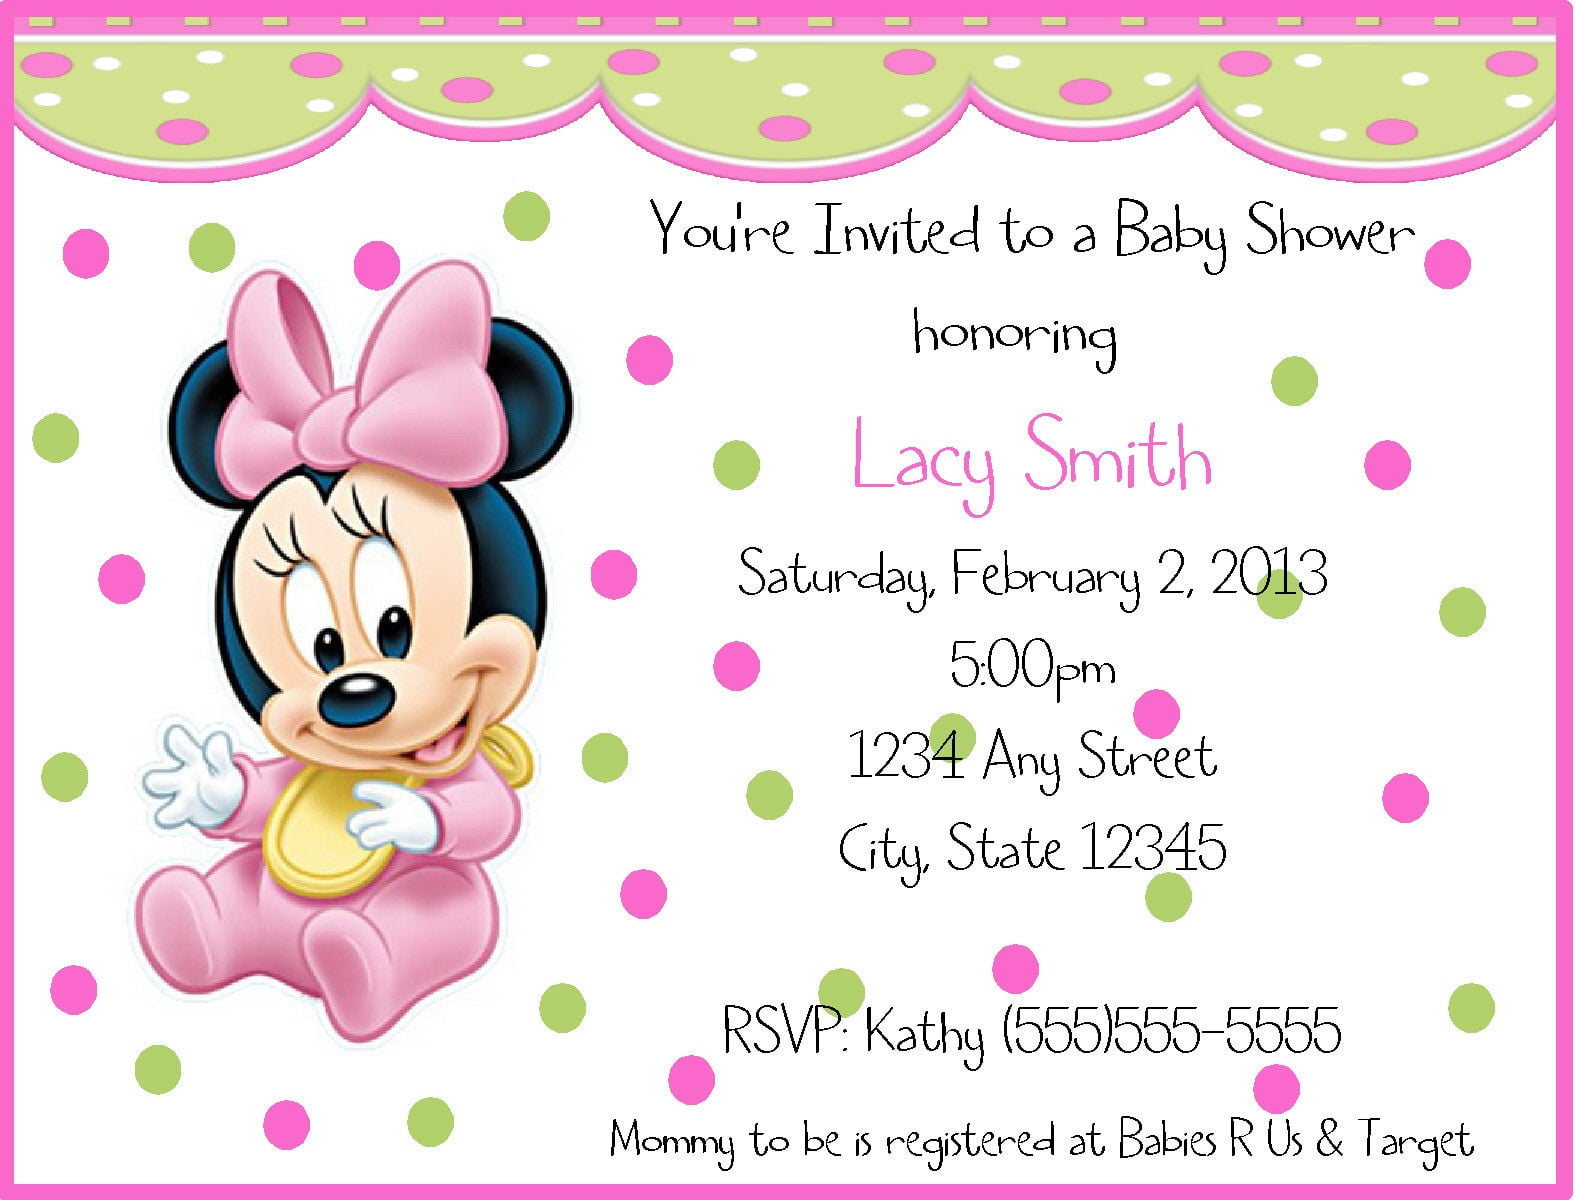 Baby minnie mouse birthday invitations free invitation templates polkadots baby minnie mouse birthday invitations filmwisefo